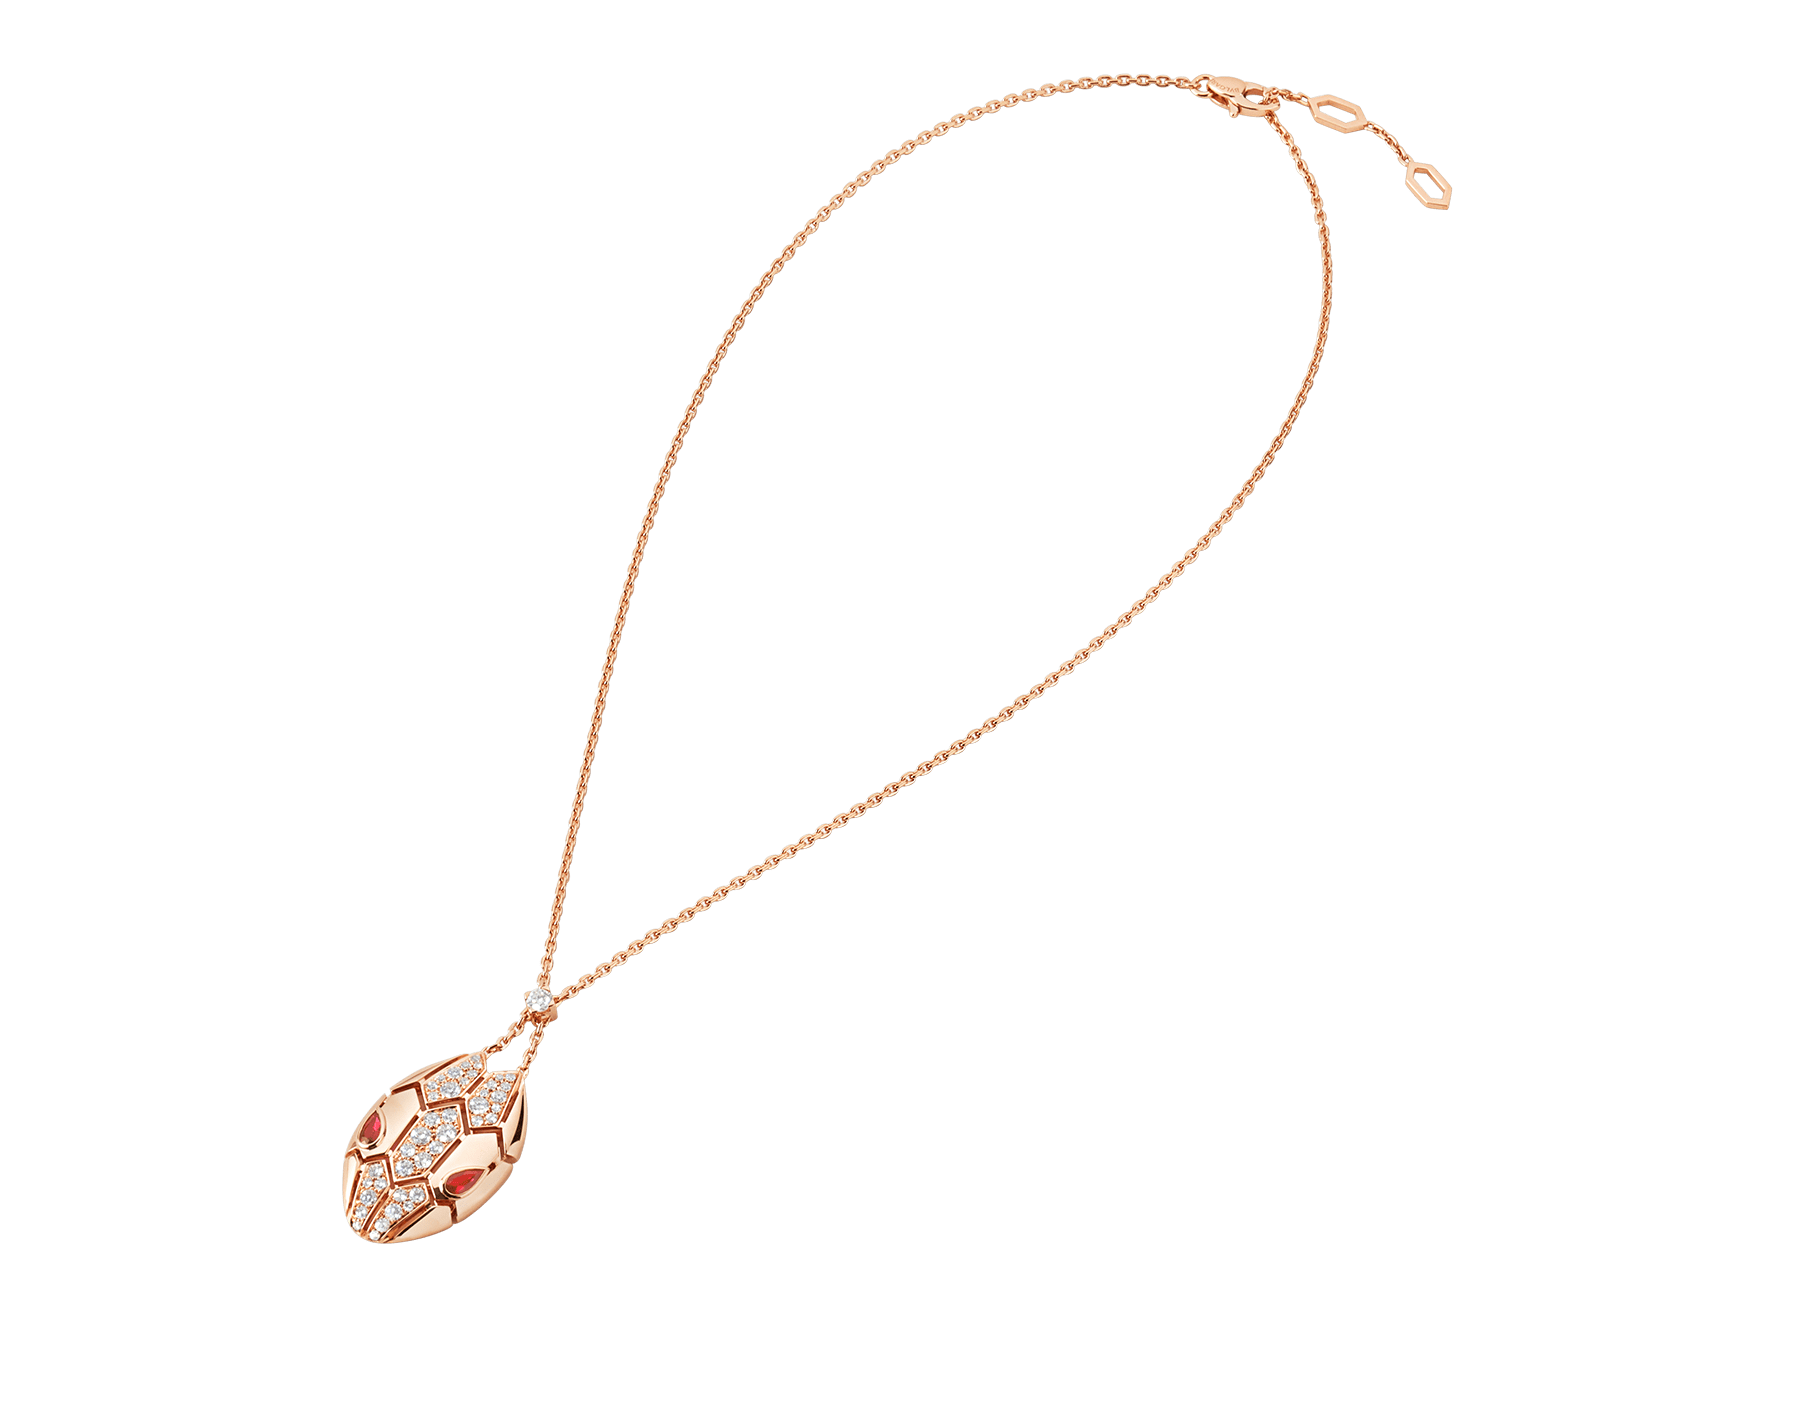 Serpenti necklace with 18 kt rose gold chain and pendant, set with rubellite eyes and demi pavé diamonds. 352748 image 2